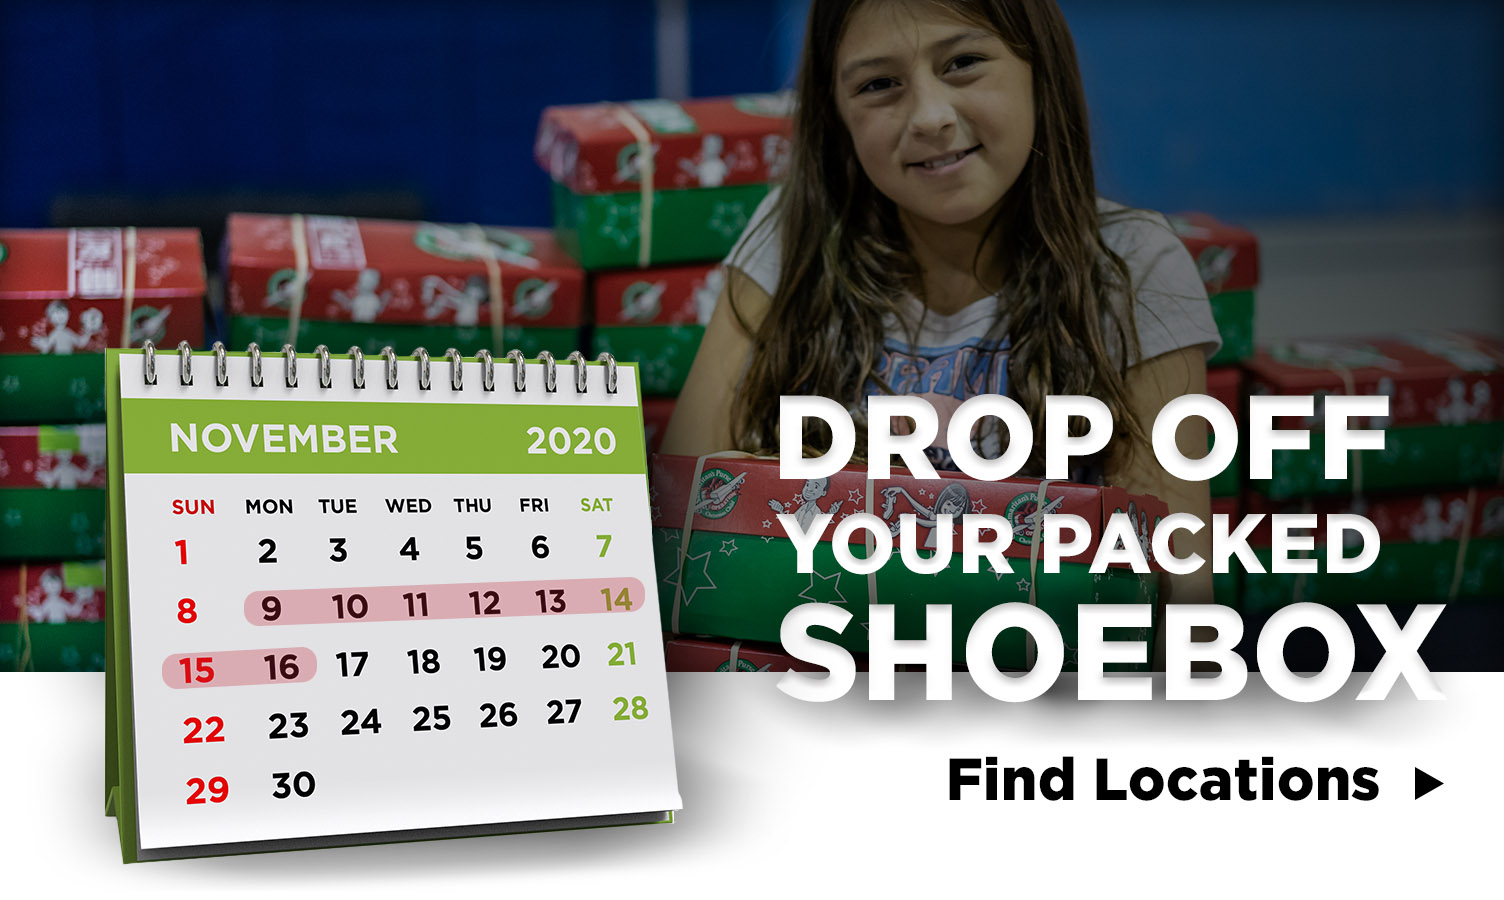 Drop off your packed shoebox